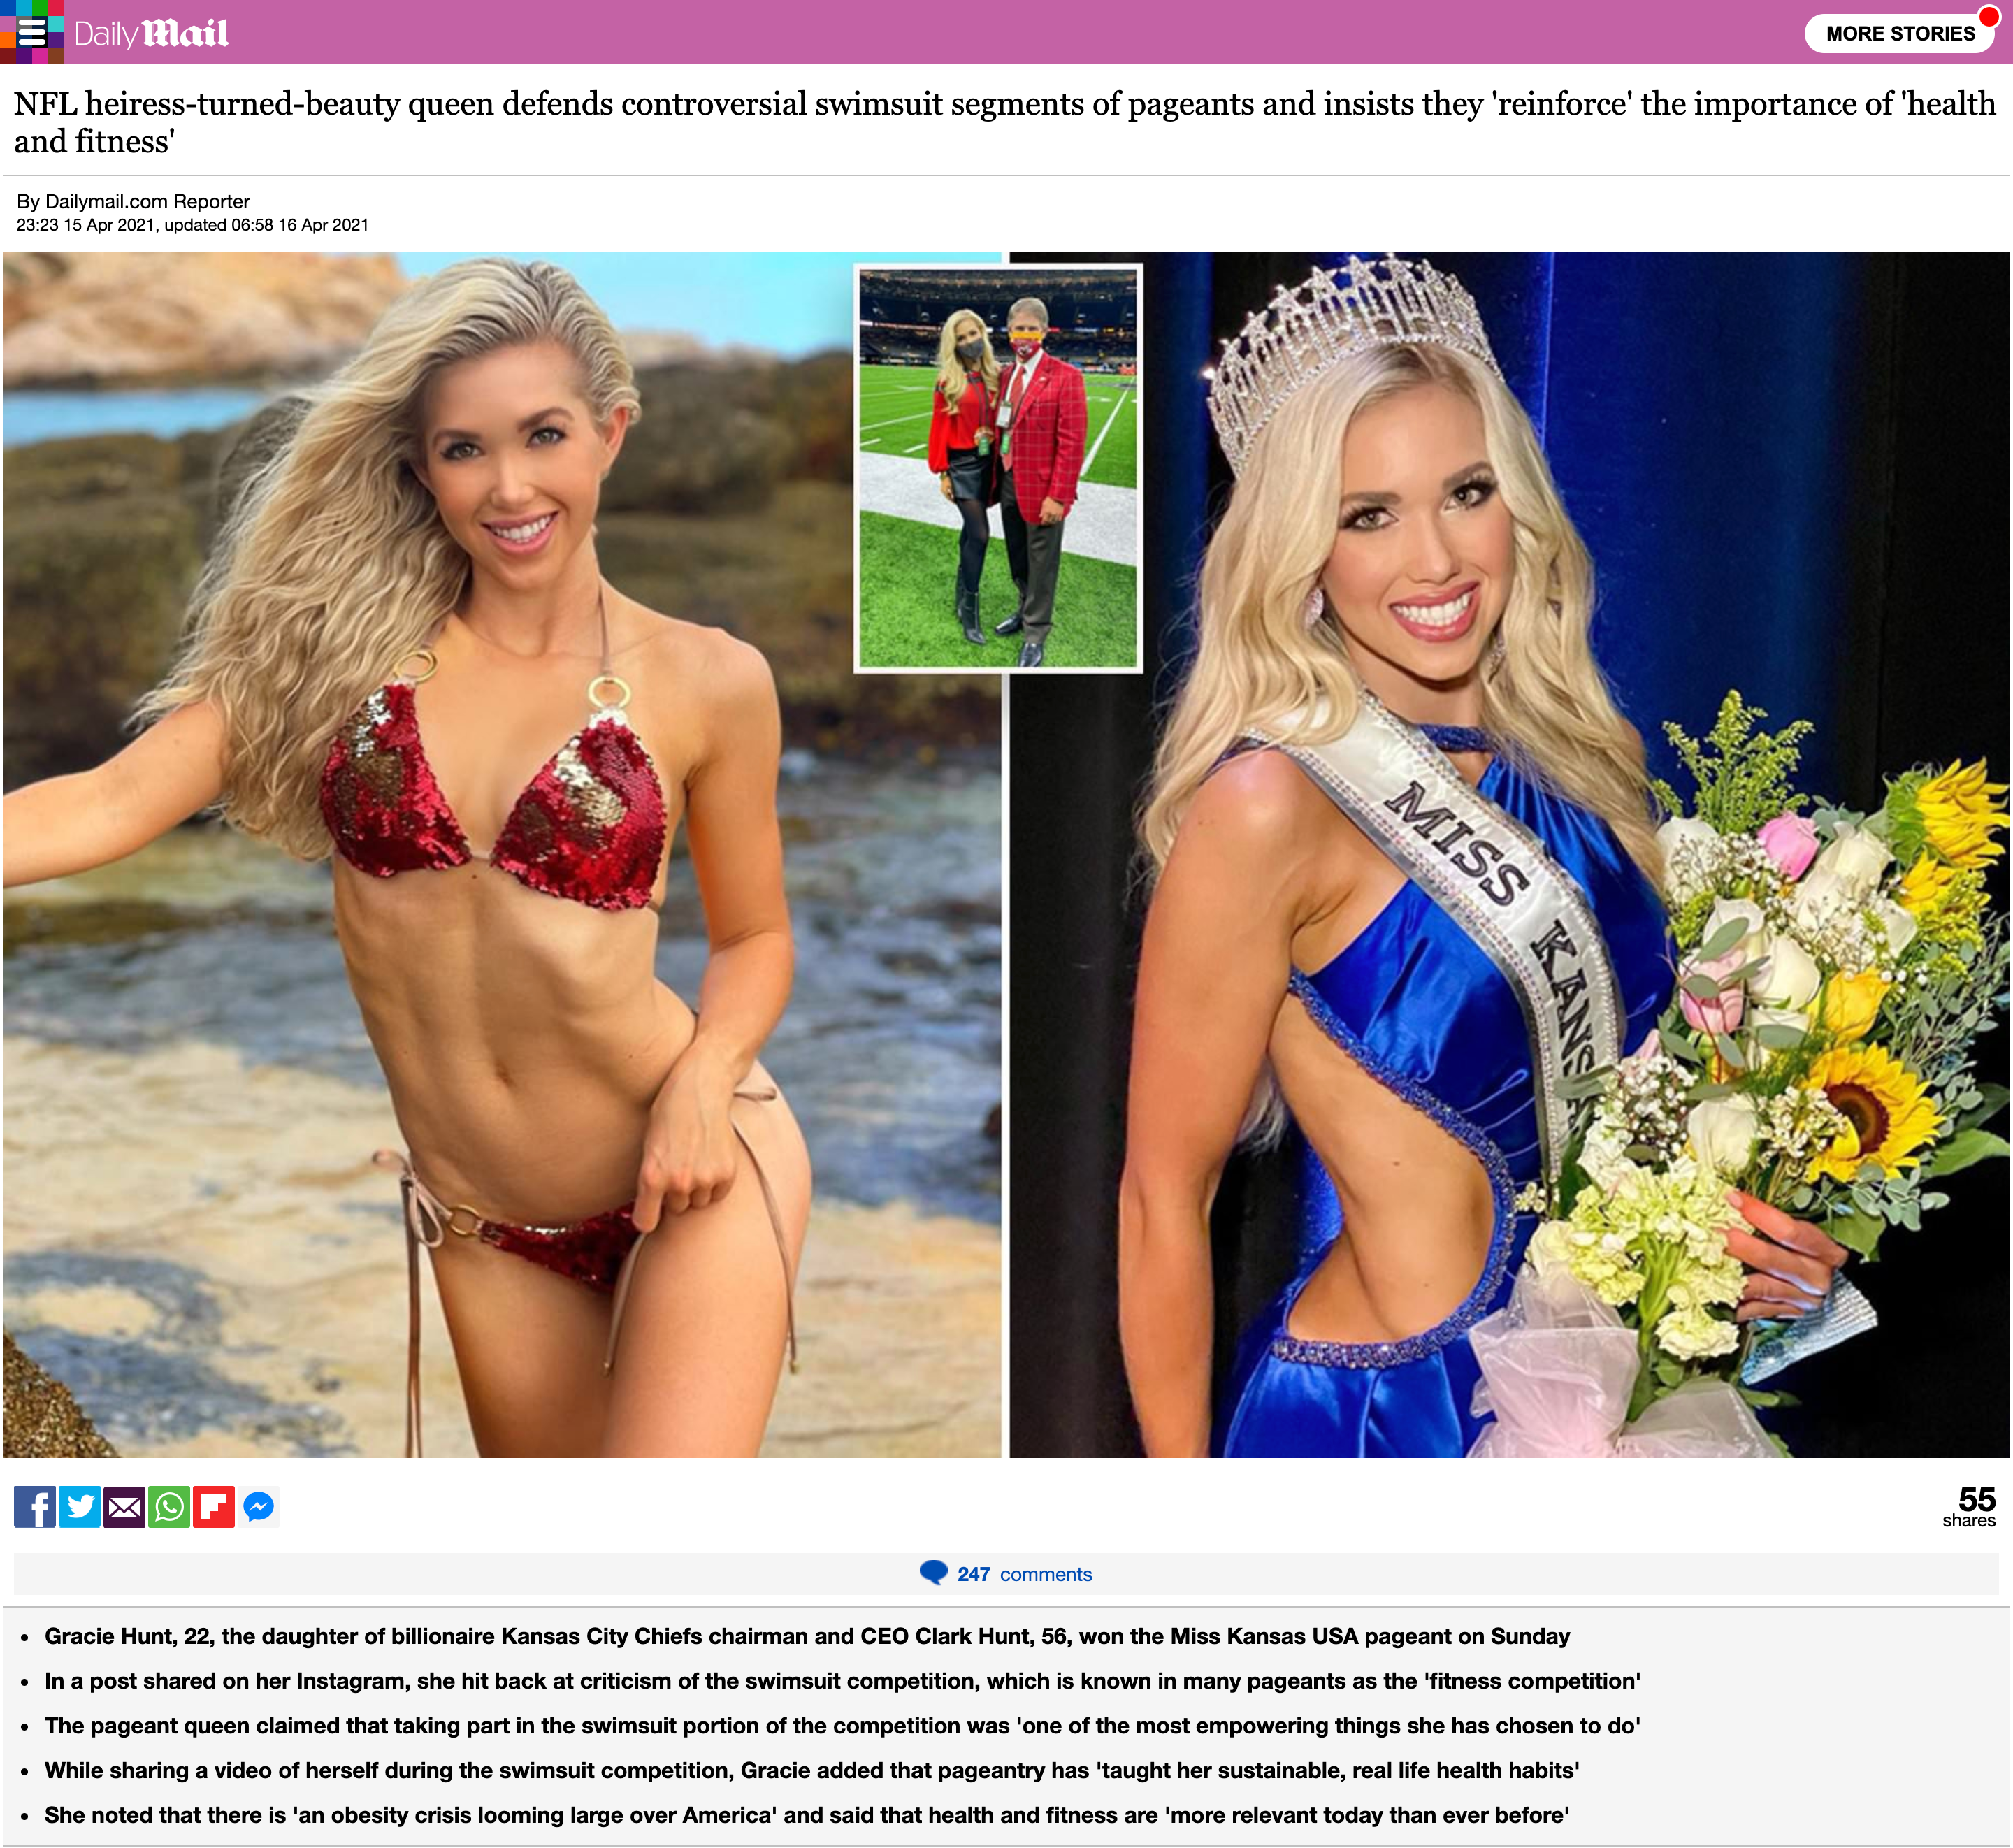 screencapture-dailymail-co-uk-femail-article-9476501-amp-NFL-heiress-pageant-queen-Gracie-Hunt-defends-swimsuit-competition-html-2021-04-19-08_12_37-edit